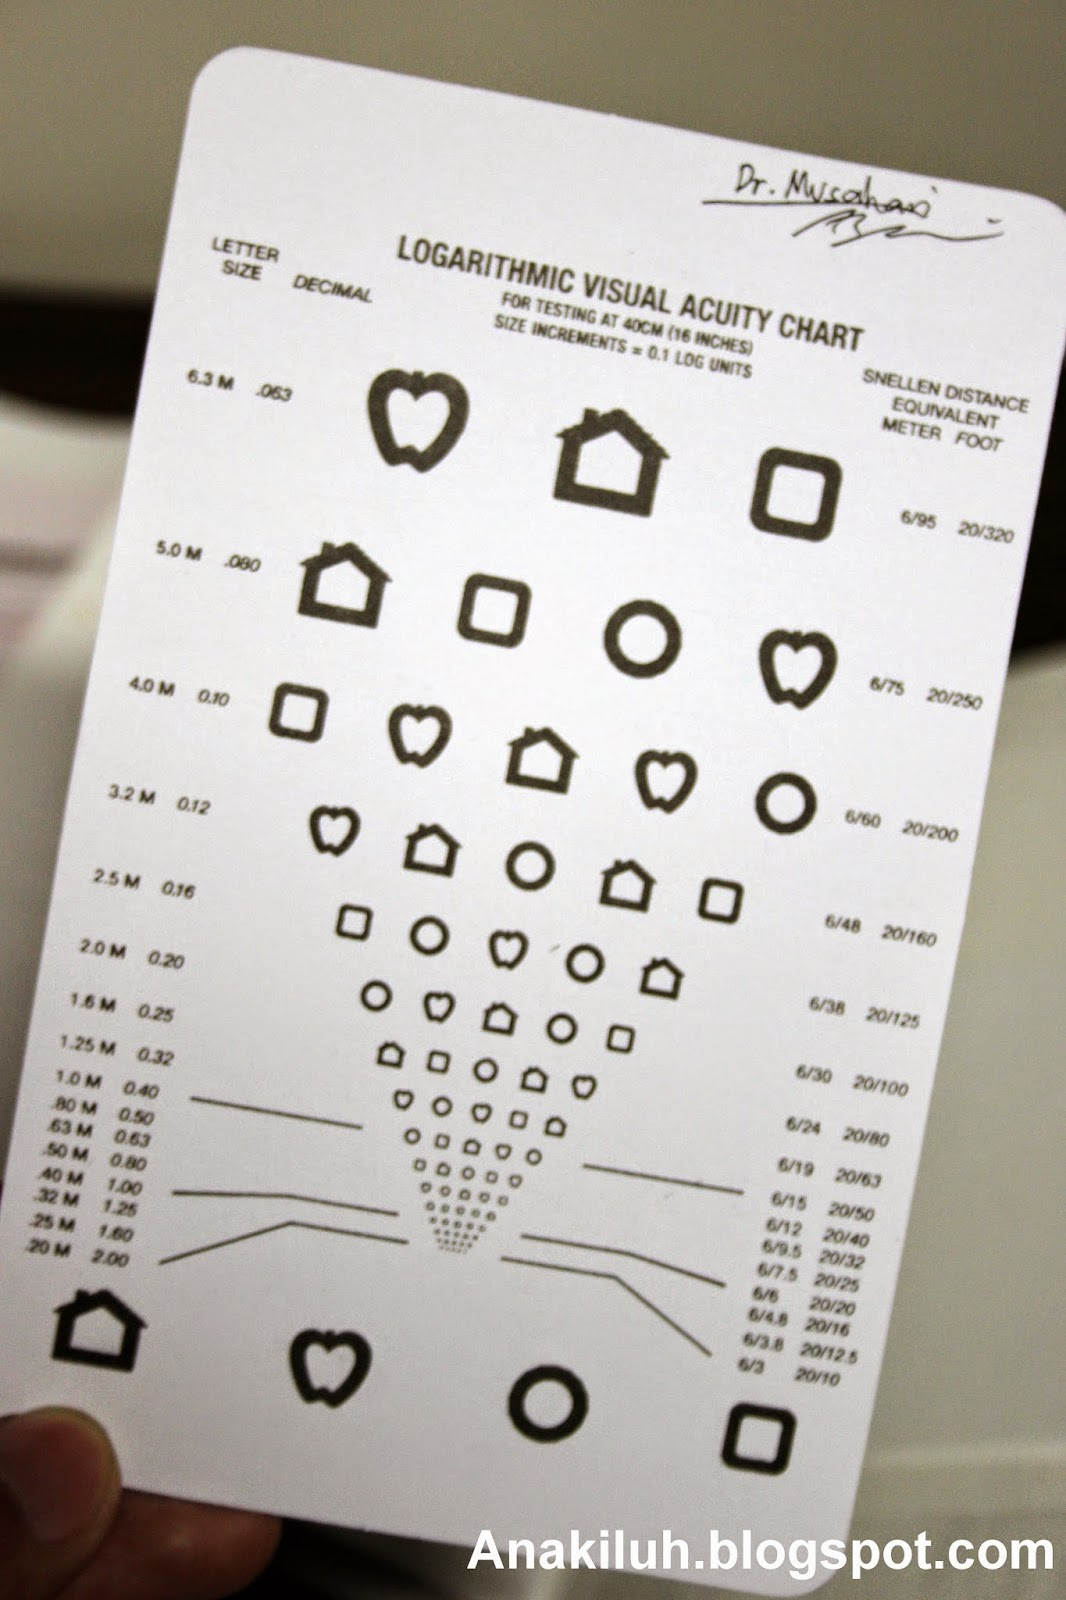 Medschool Moro Bloggers Central Aggregator Hobby Hound Diy Electronics Projects2 And Look The Book Also Comes With This Visual Acuity Chart For Kids